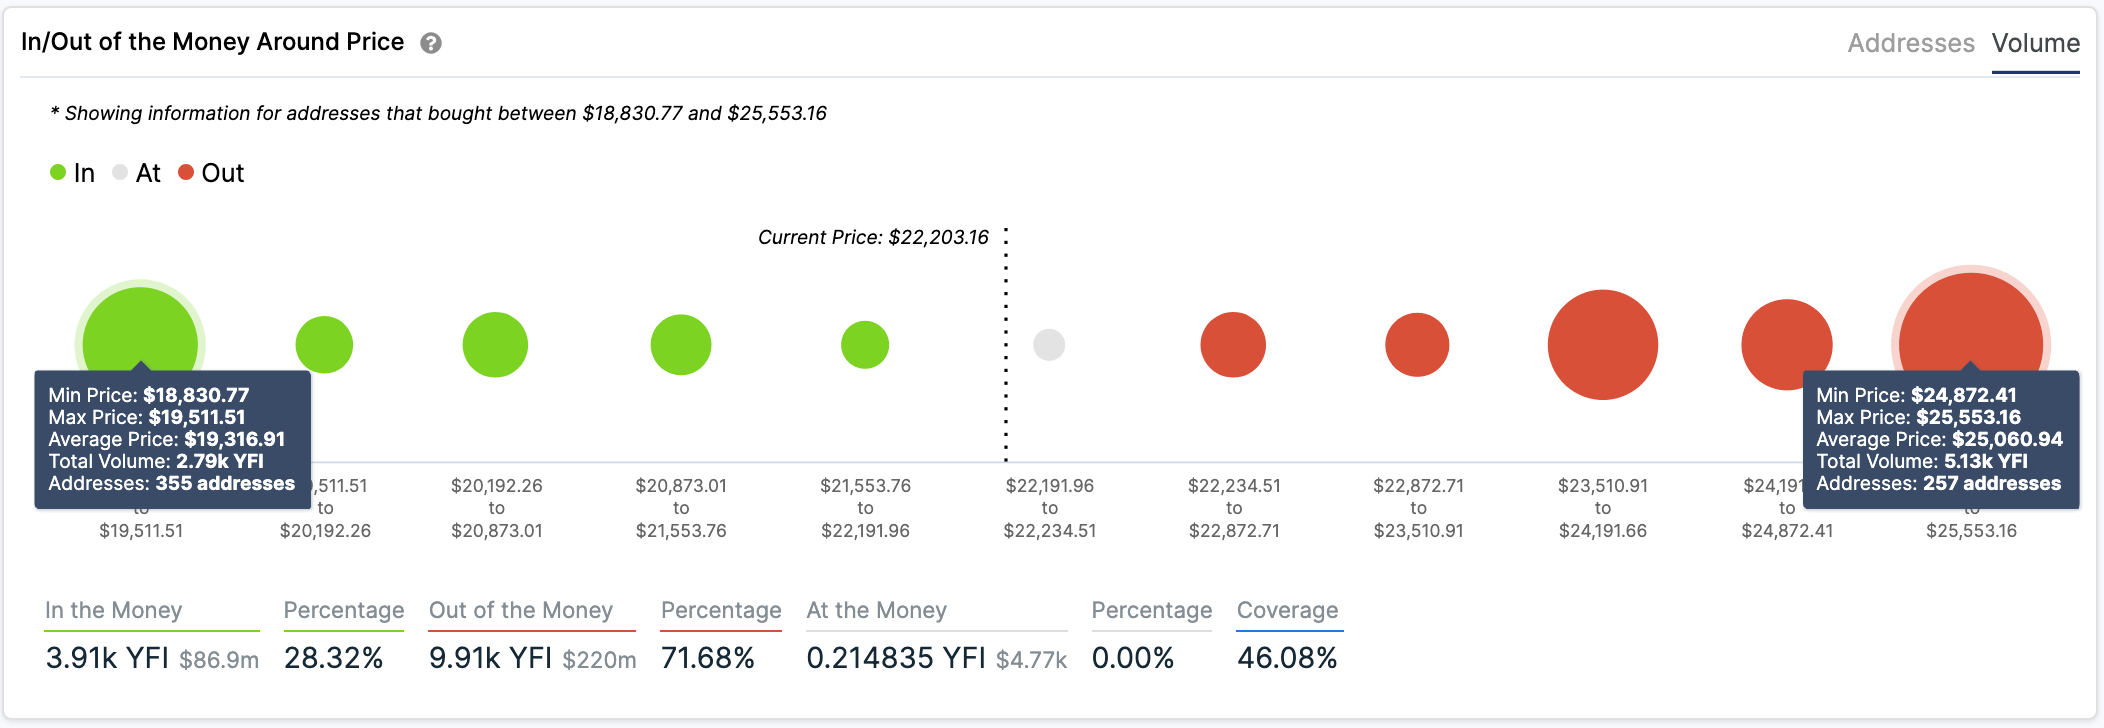 In/Out of the Money Around Price for YFI